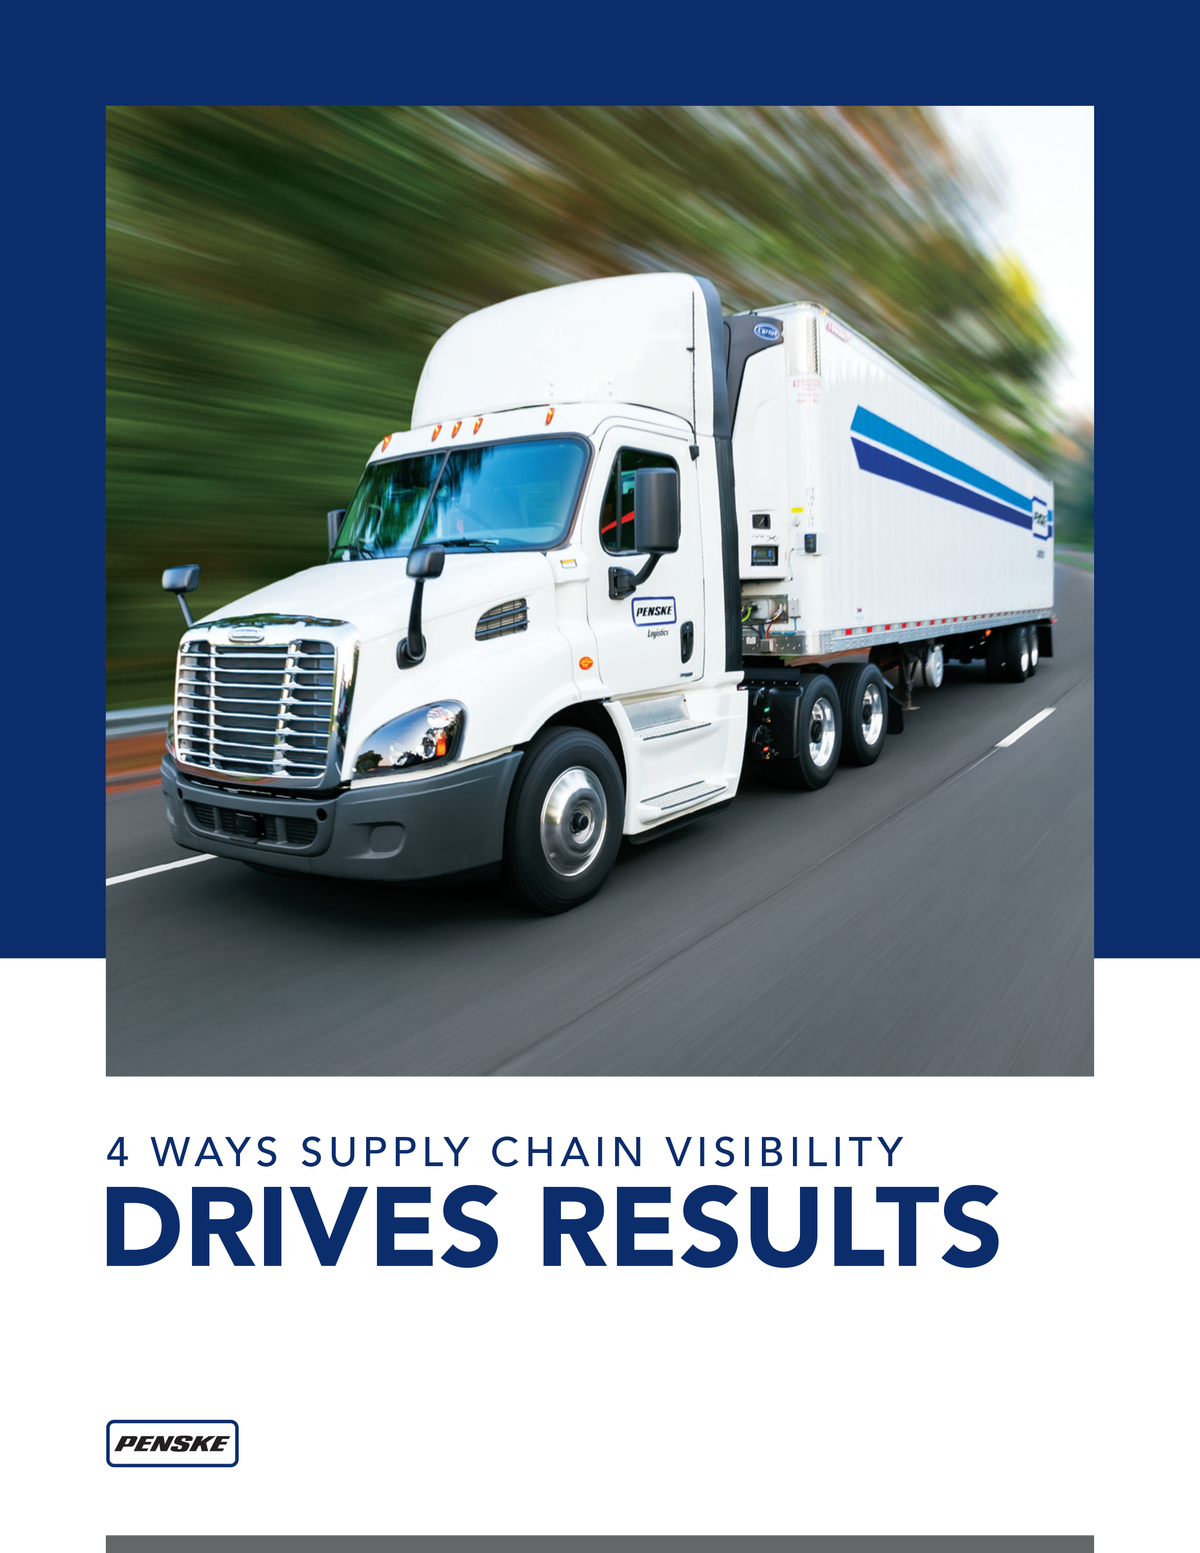 Supply Chain Visibility Guide